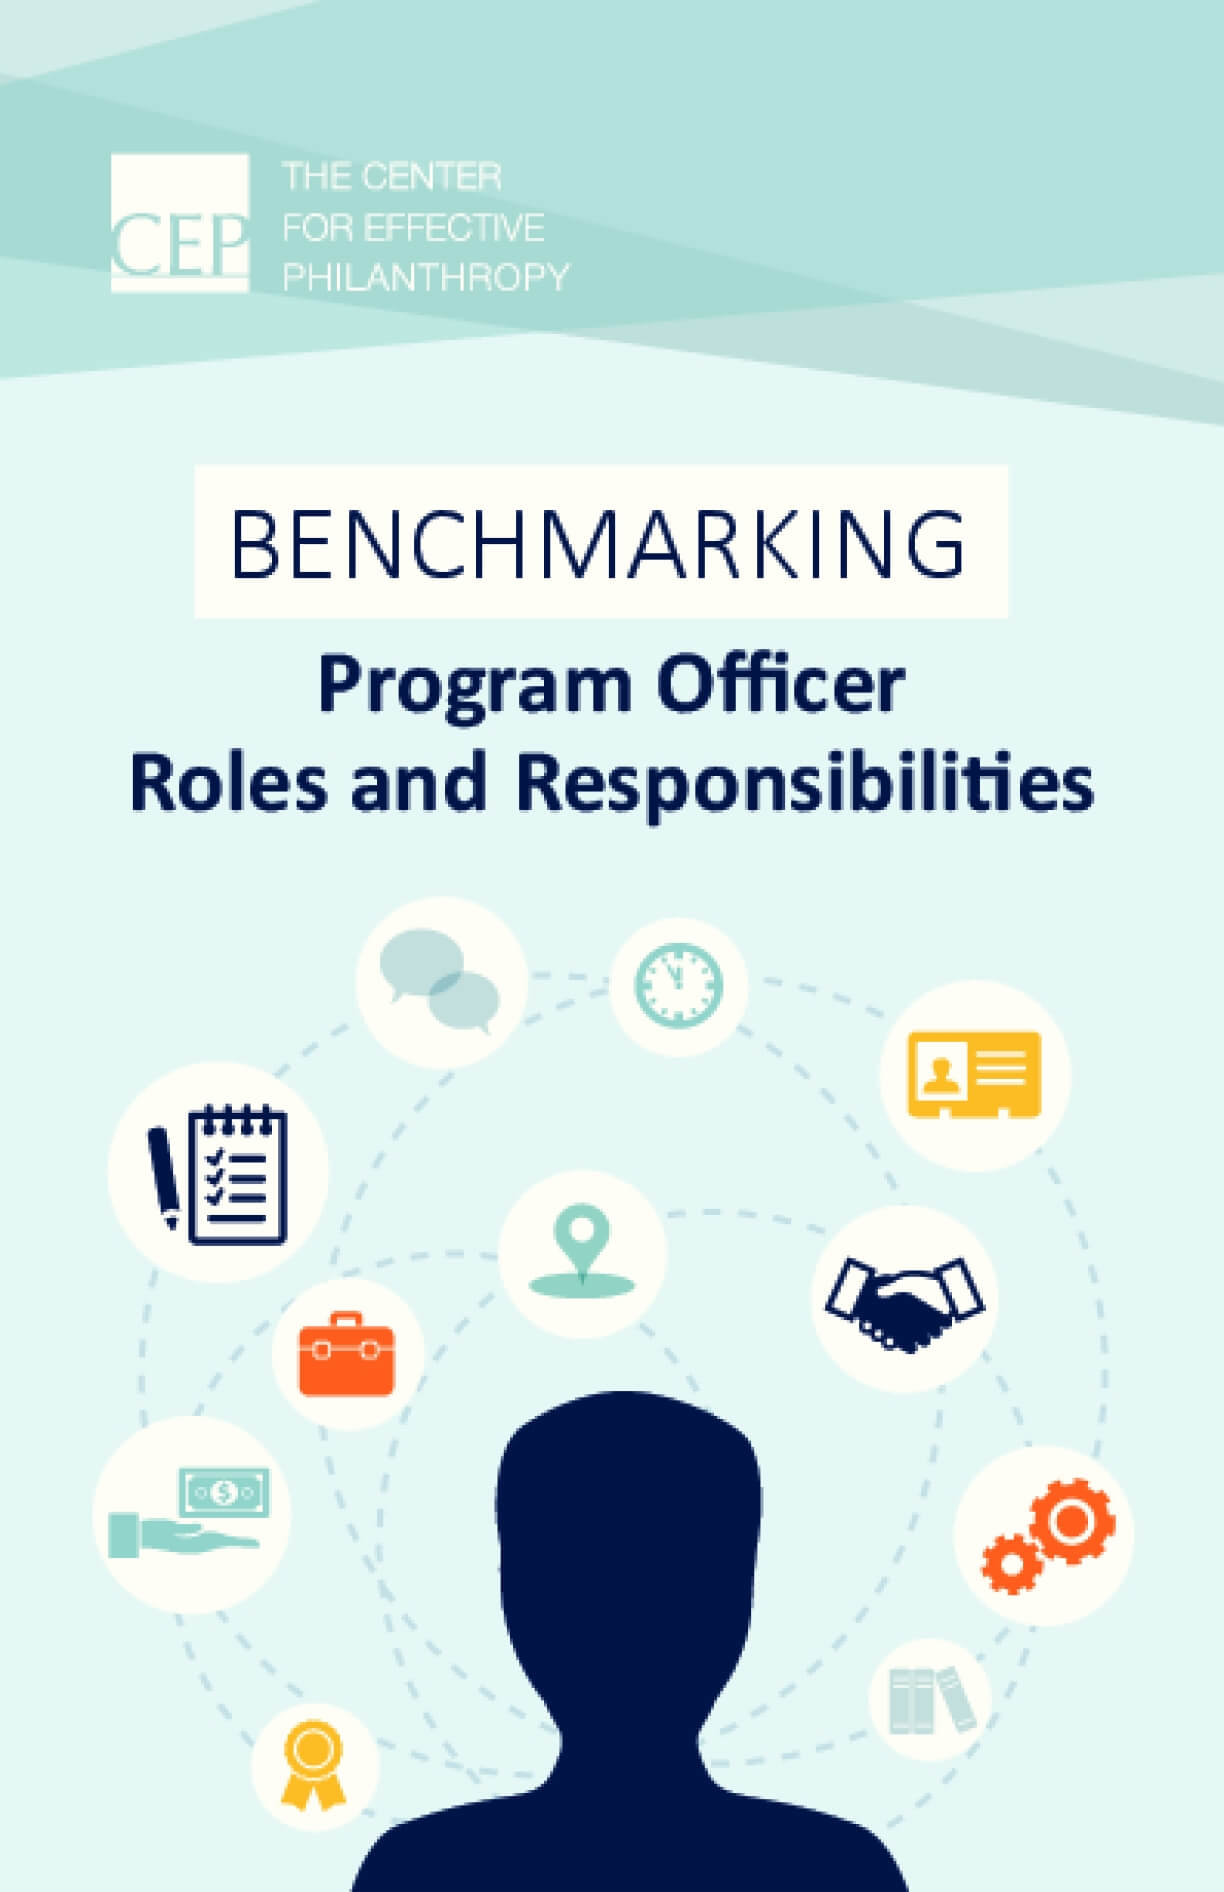 Benchmarking Program Officer Roles and Responsibilities